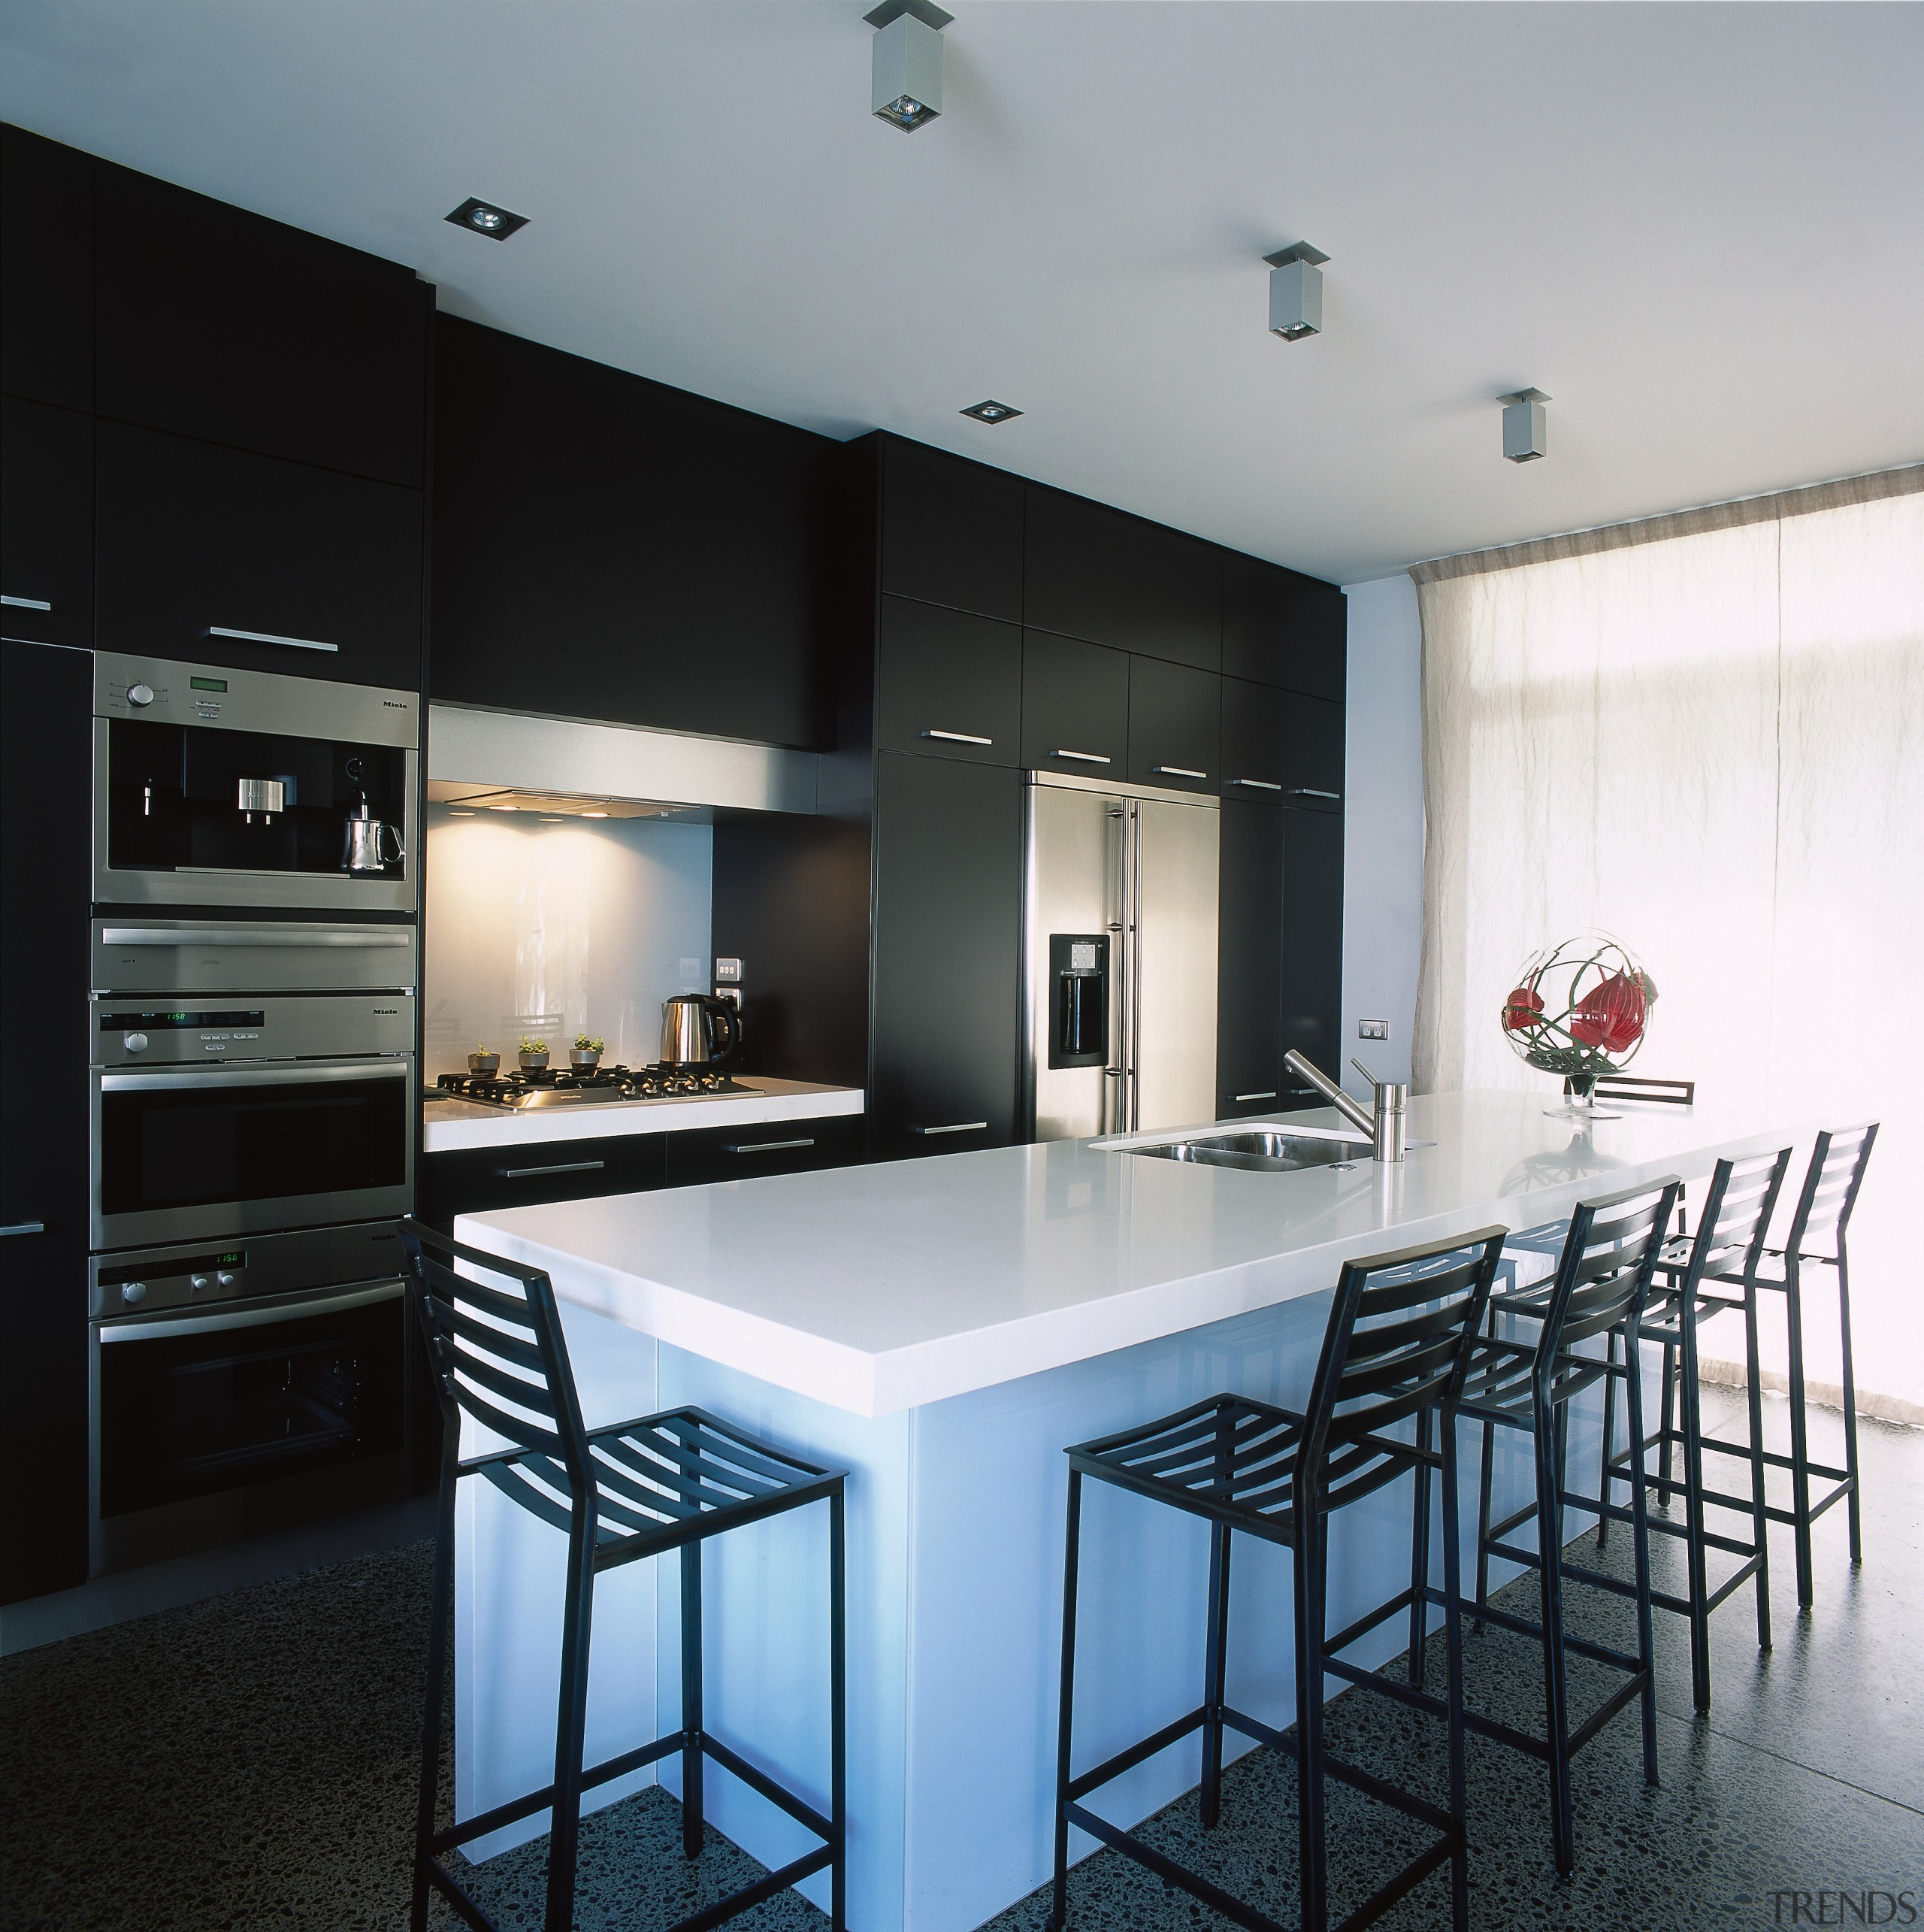 View of this kitchen - View of this countertop, interior design, kitchen, real estate, black, gray